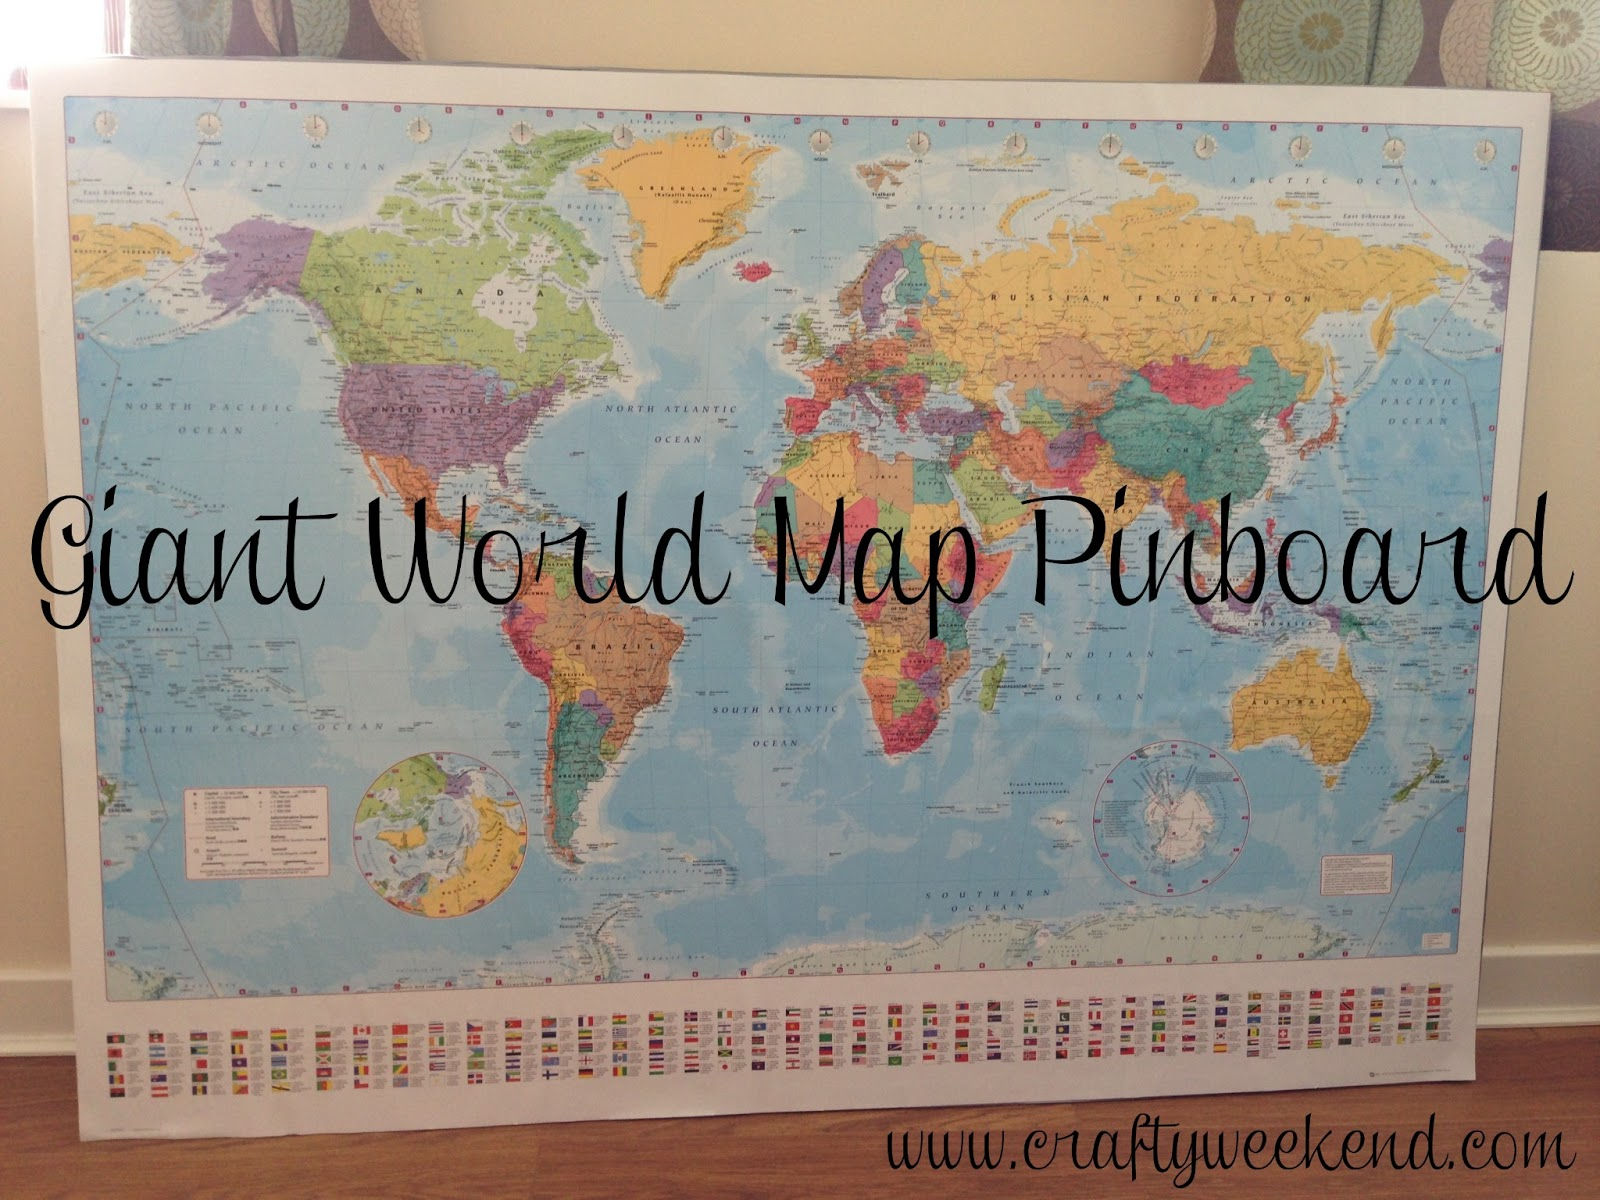 Large Paper World Map.Giant World Map Pinboard Crafty Weekend Craft Projects For The